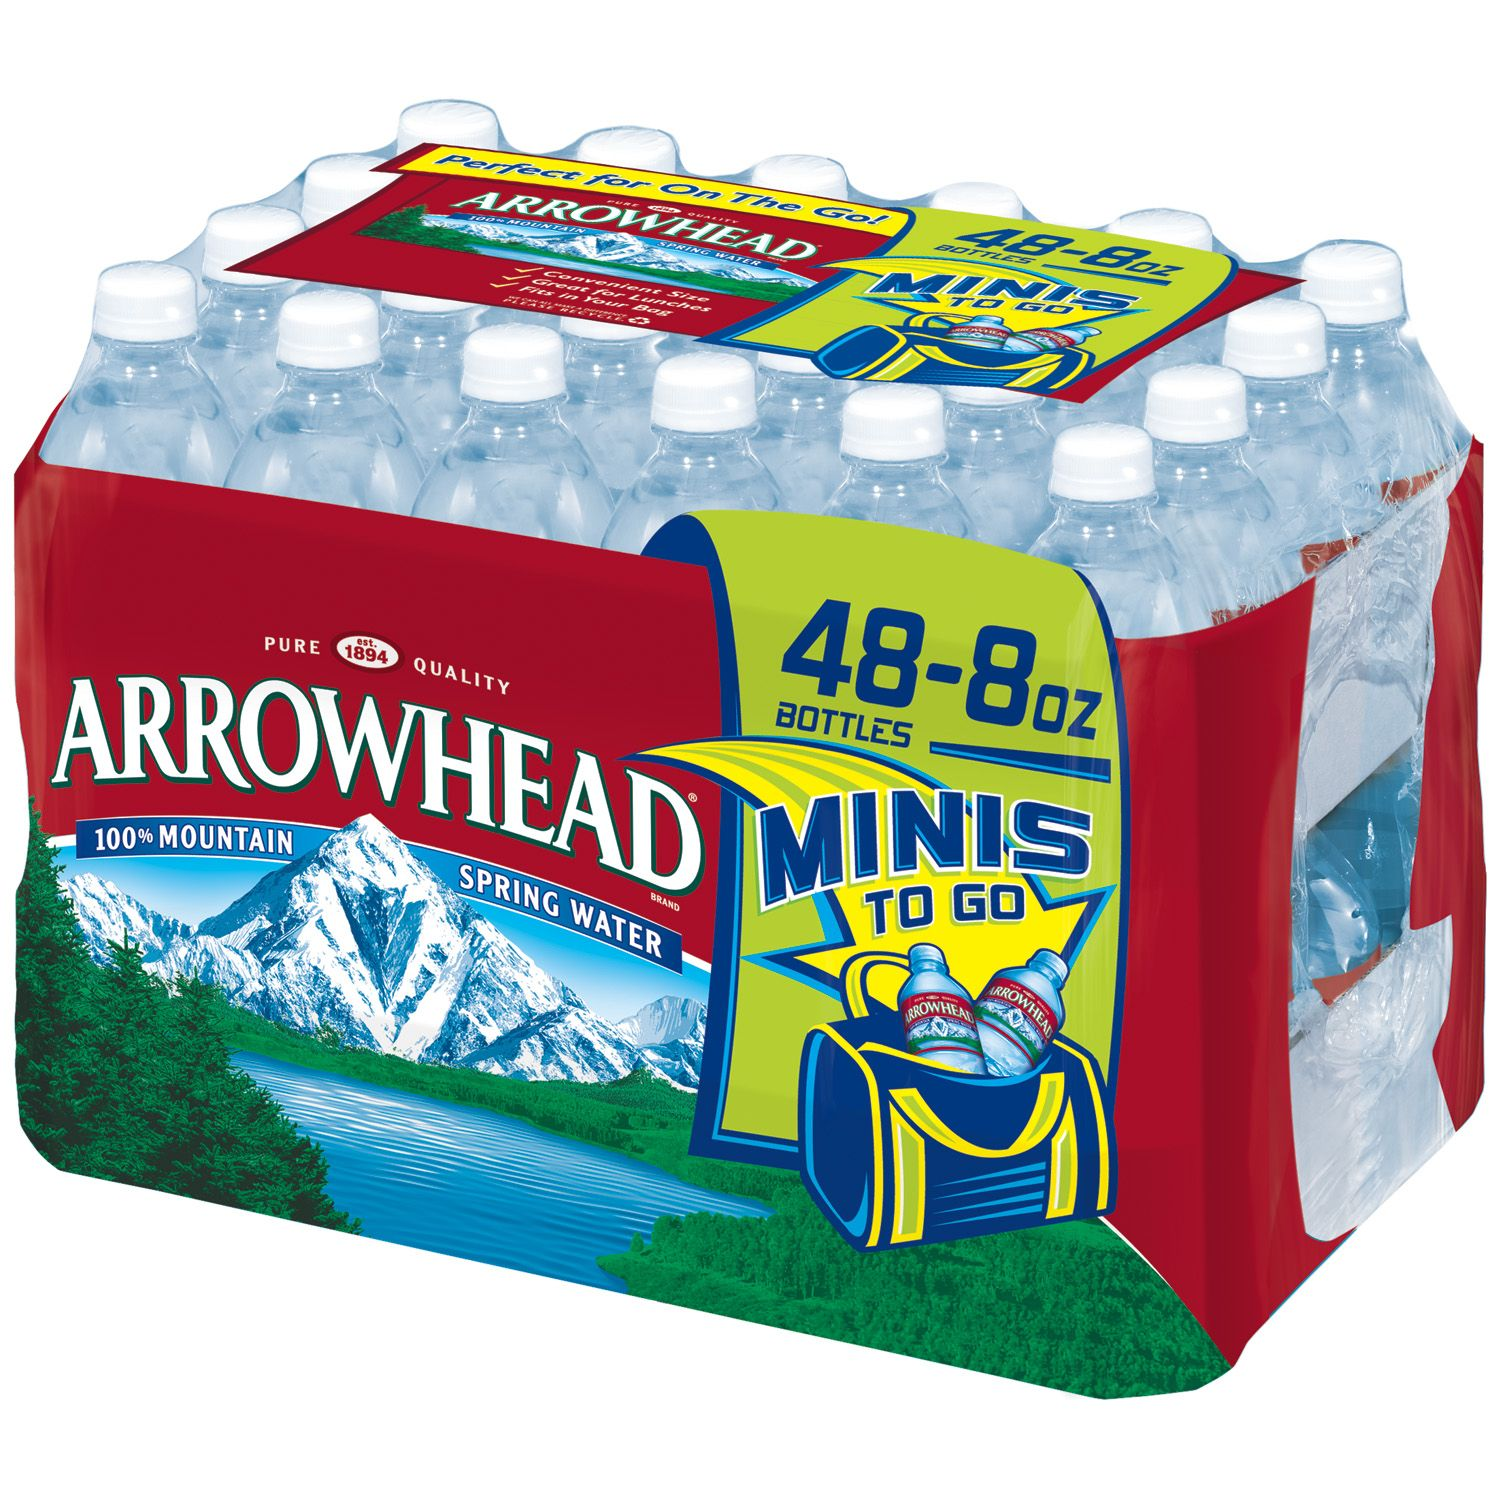 Arrowhead Natural Spring Water (8 oz. bottles, 48 ct.)